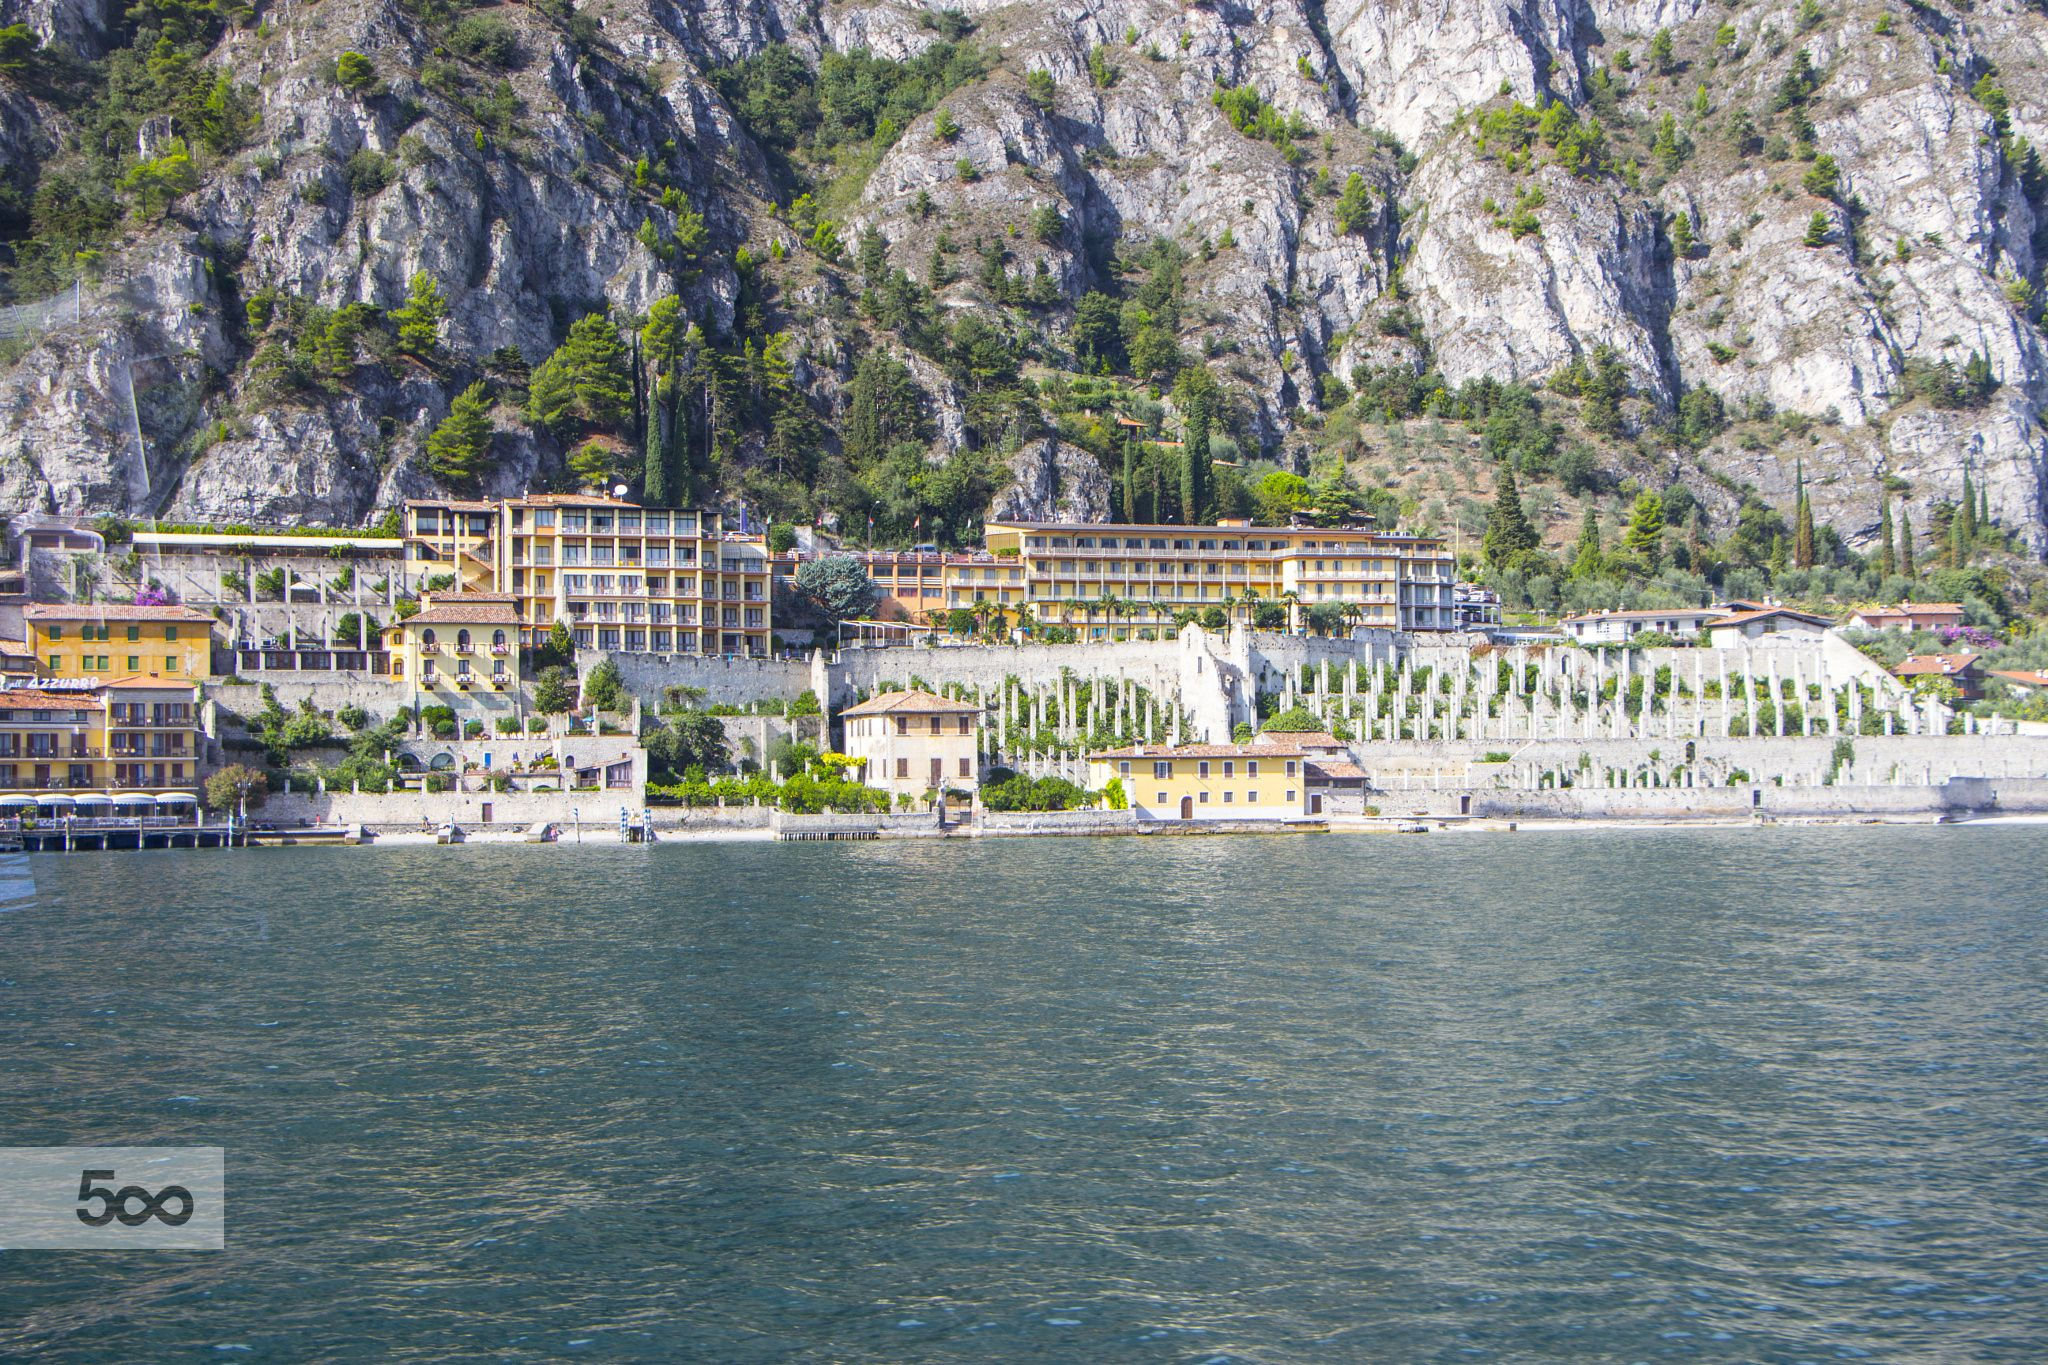 The city Limone on the shores of Lake Garda! by moonlotus87 on 500px